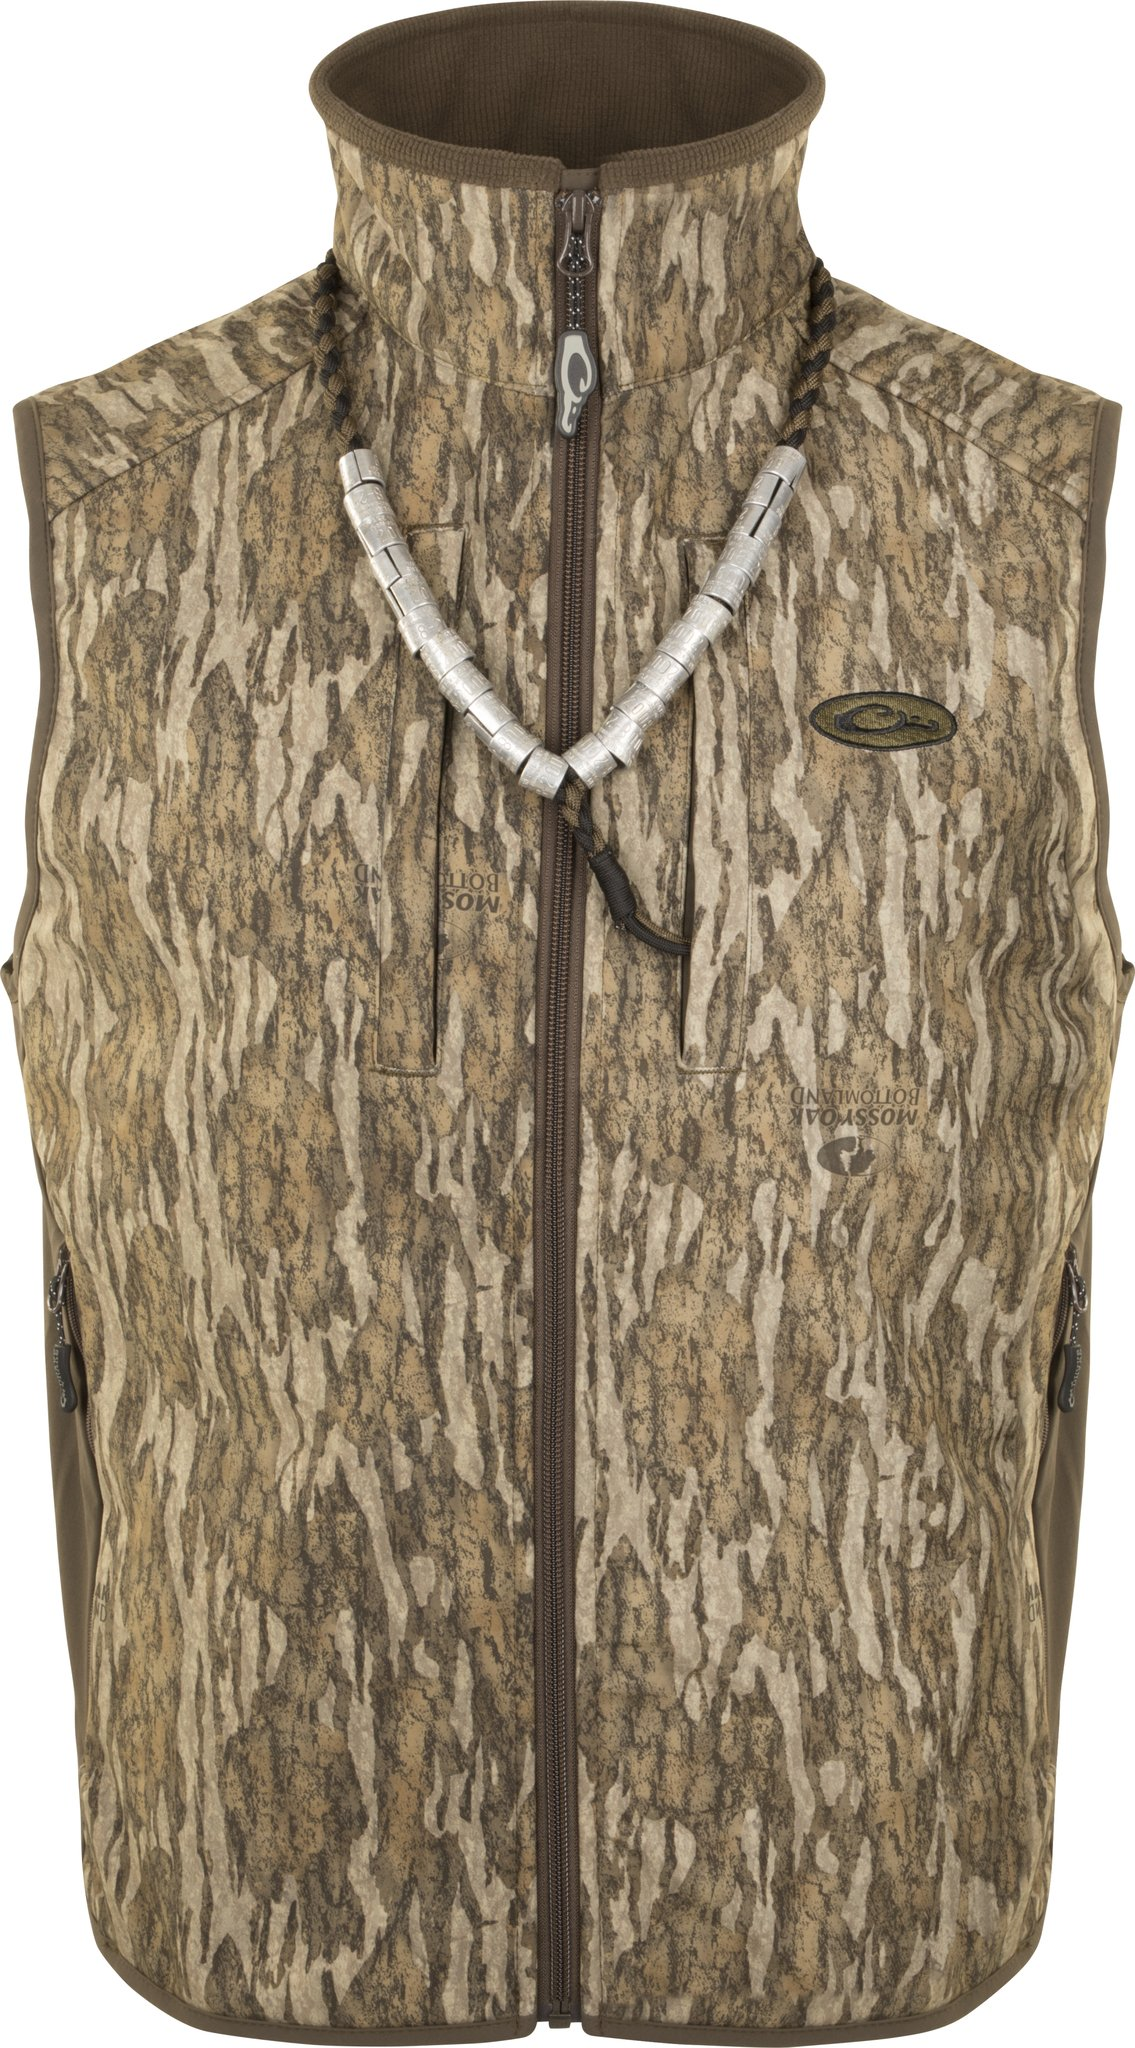 Drake EST Camo Windproof Tech Vest (Bottomland, 3X-Large) by Drake